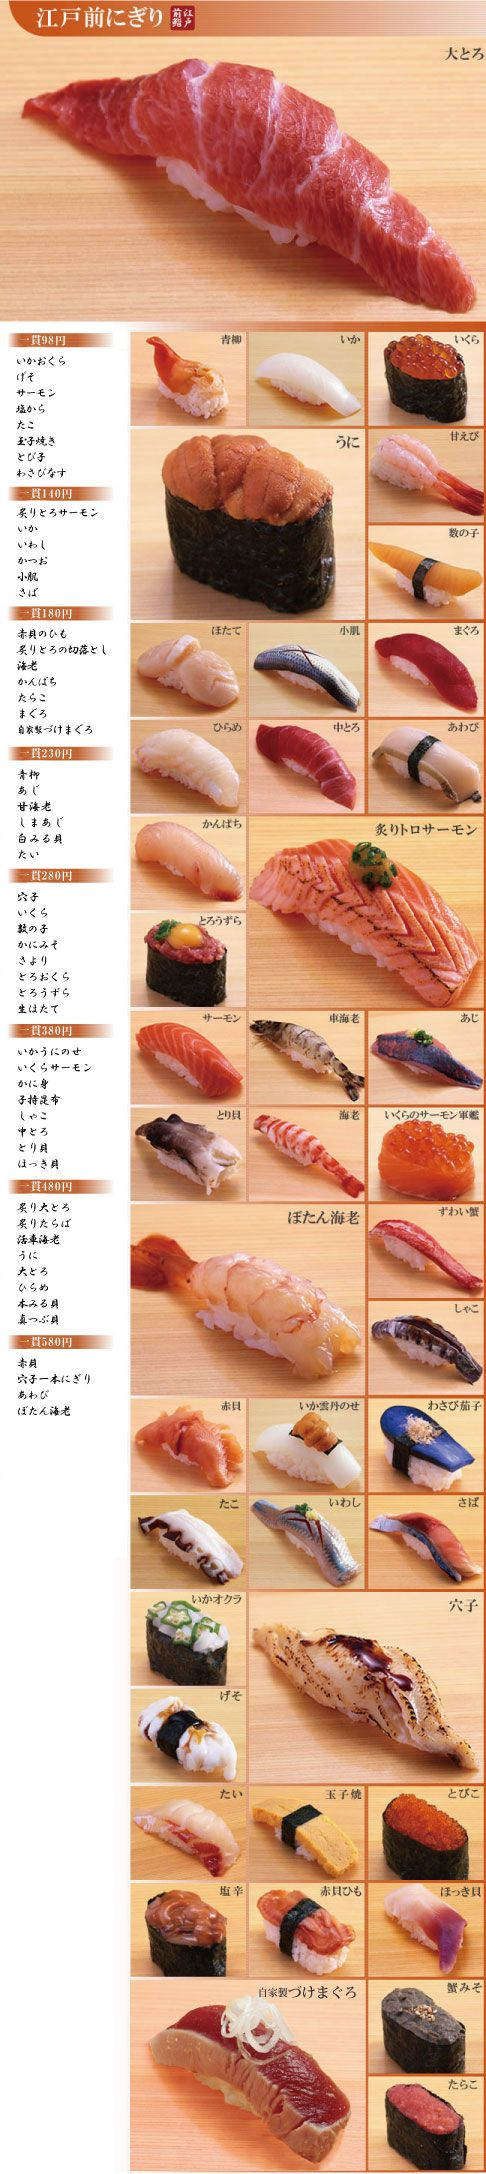 i try not to indulge too much... but can't resist when in Tsukiji!  Sushi Cascade: Edomae Nigiri Sushi Menu at Tsukiji Tamasushi (Tokyo, Japan)|築地玉寿司の江戸前にぎり